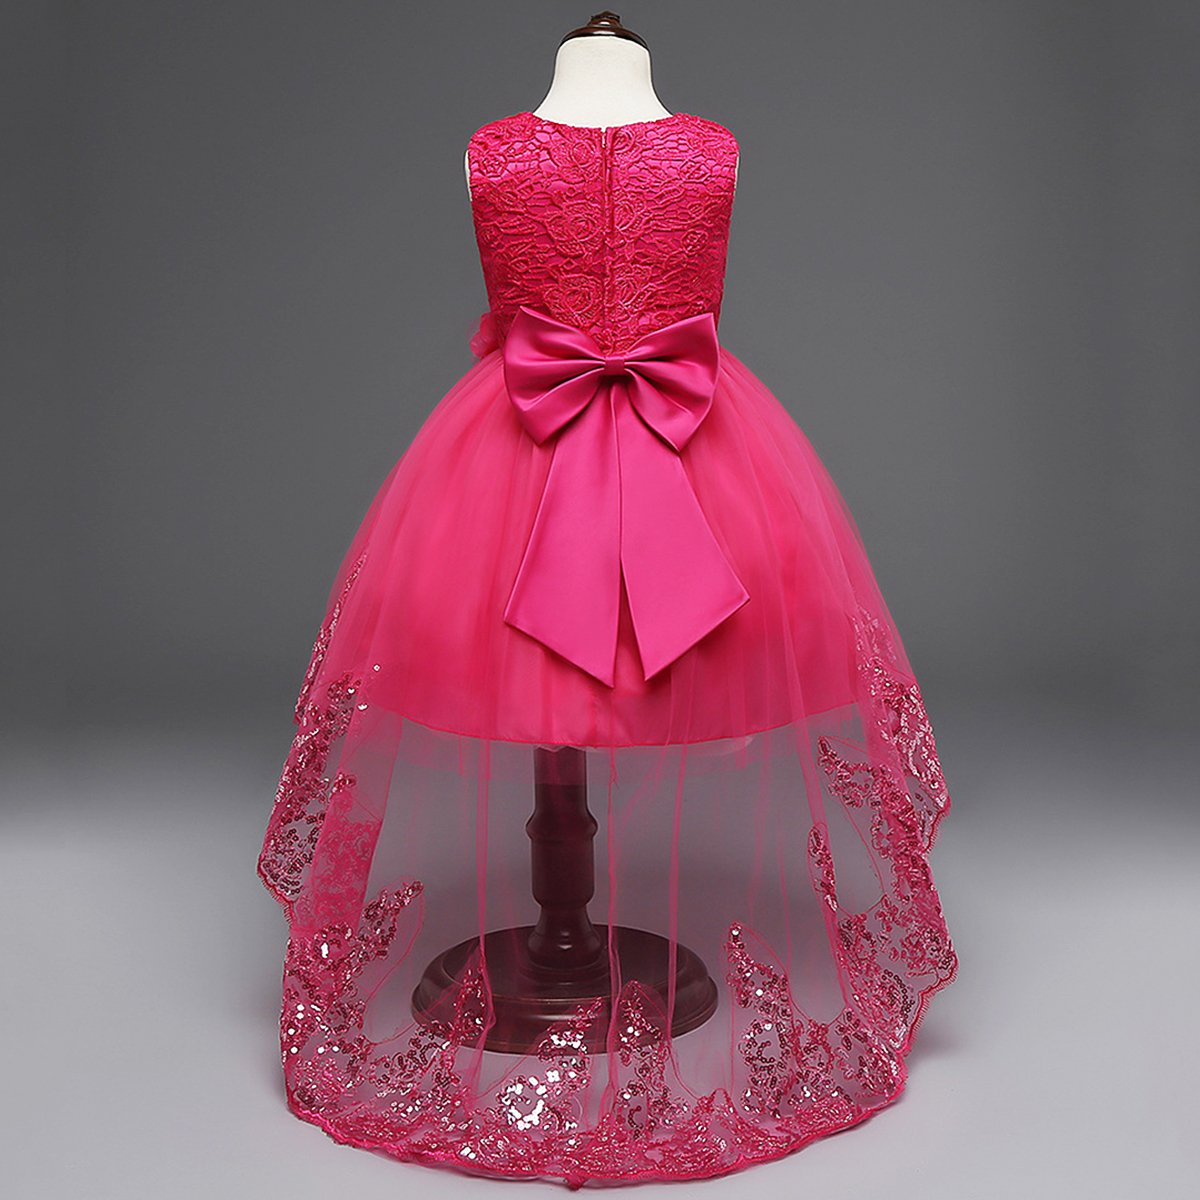 IBTOM CASTLE Girls Sequins Lace Tulle Wedding Pageant Dresses Formal Flower Gown